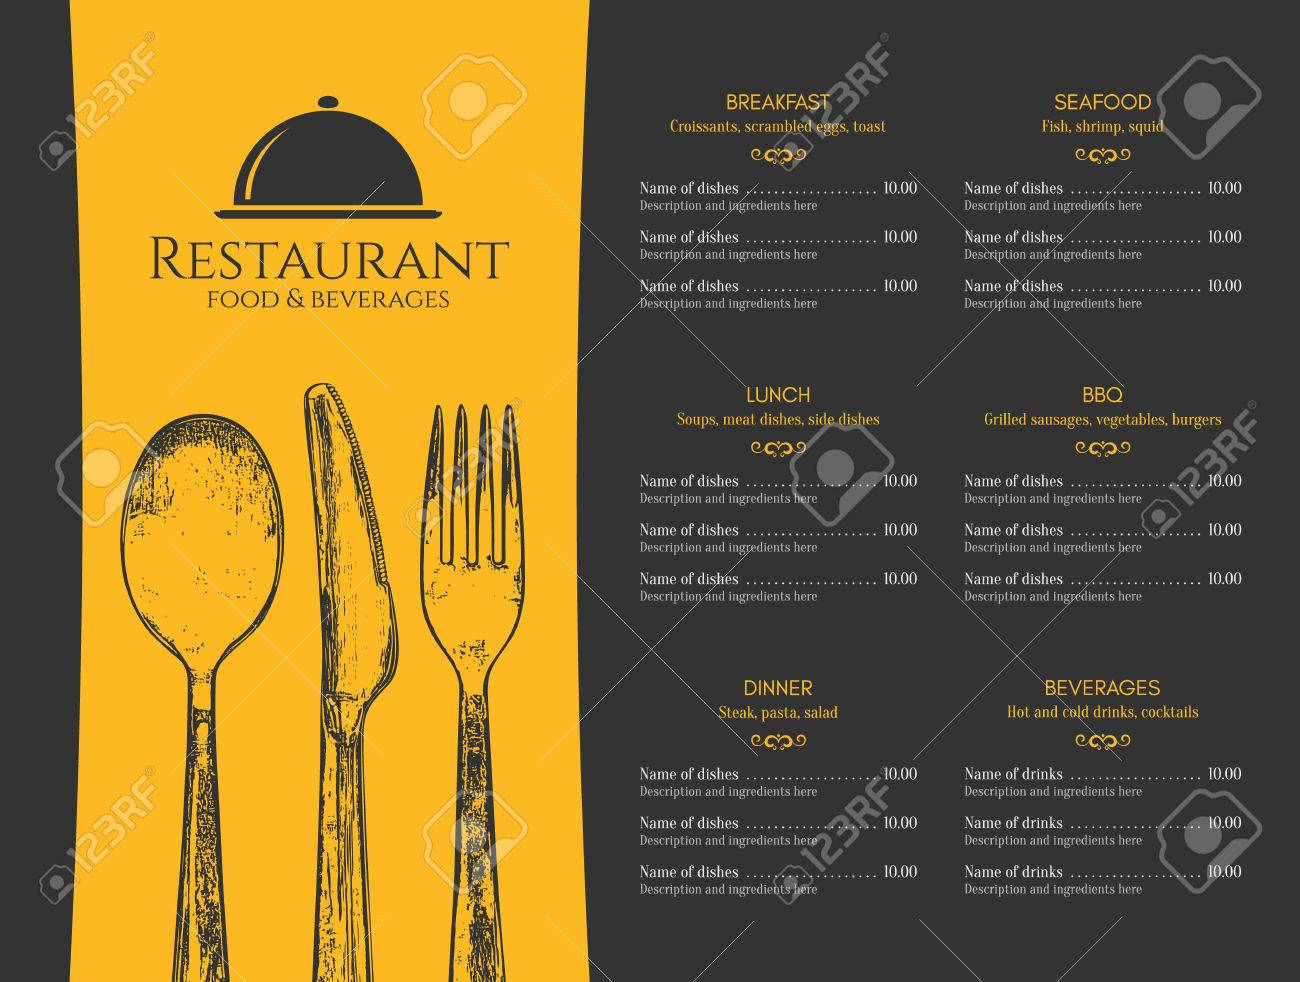 Restaurant Menu Design Vector Menu Brochure Template For Cafe Royalty Free Cliparts Vectors And Stock Illustration Image 81939785